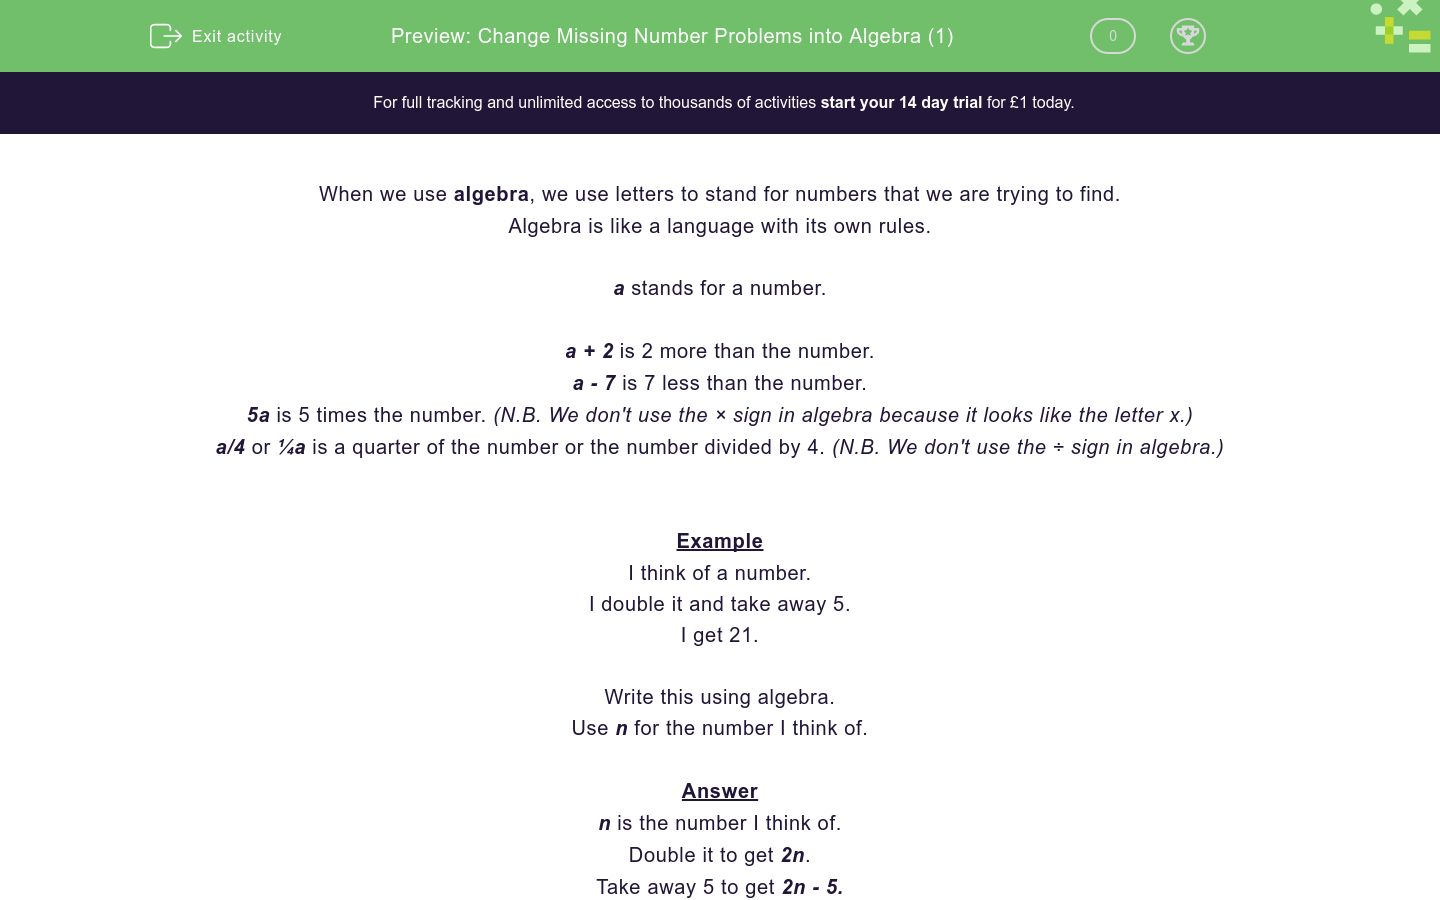 'Change Missing Number Problems into Algebra (1)' worksheet